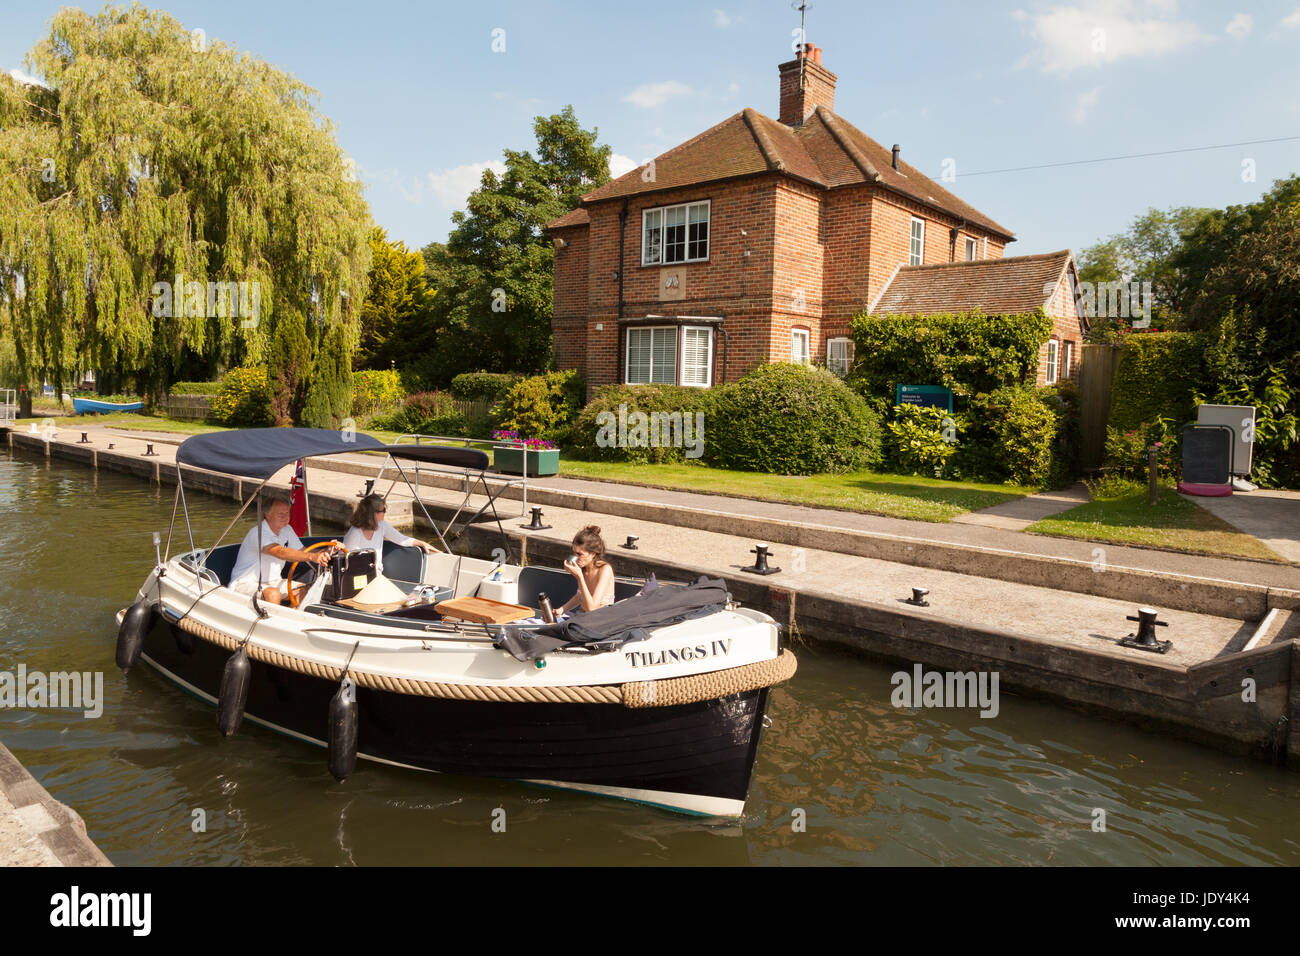 River Thames Oxfordshire; - A boat in Shiplake Lock, on the River Thames, Oxfordshire England UK - Stock Image